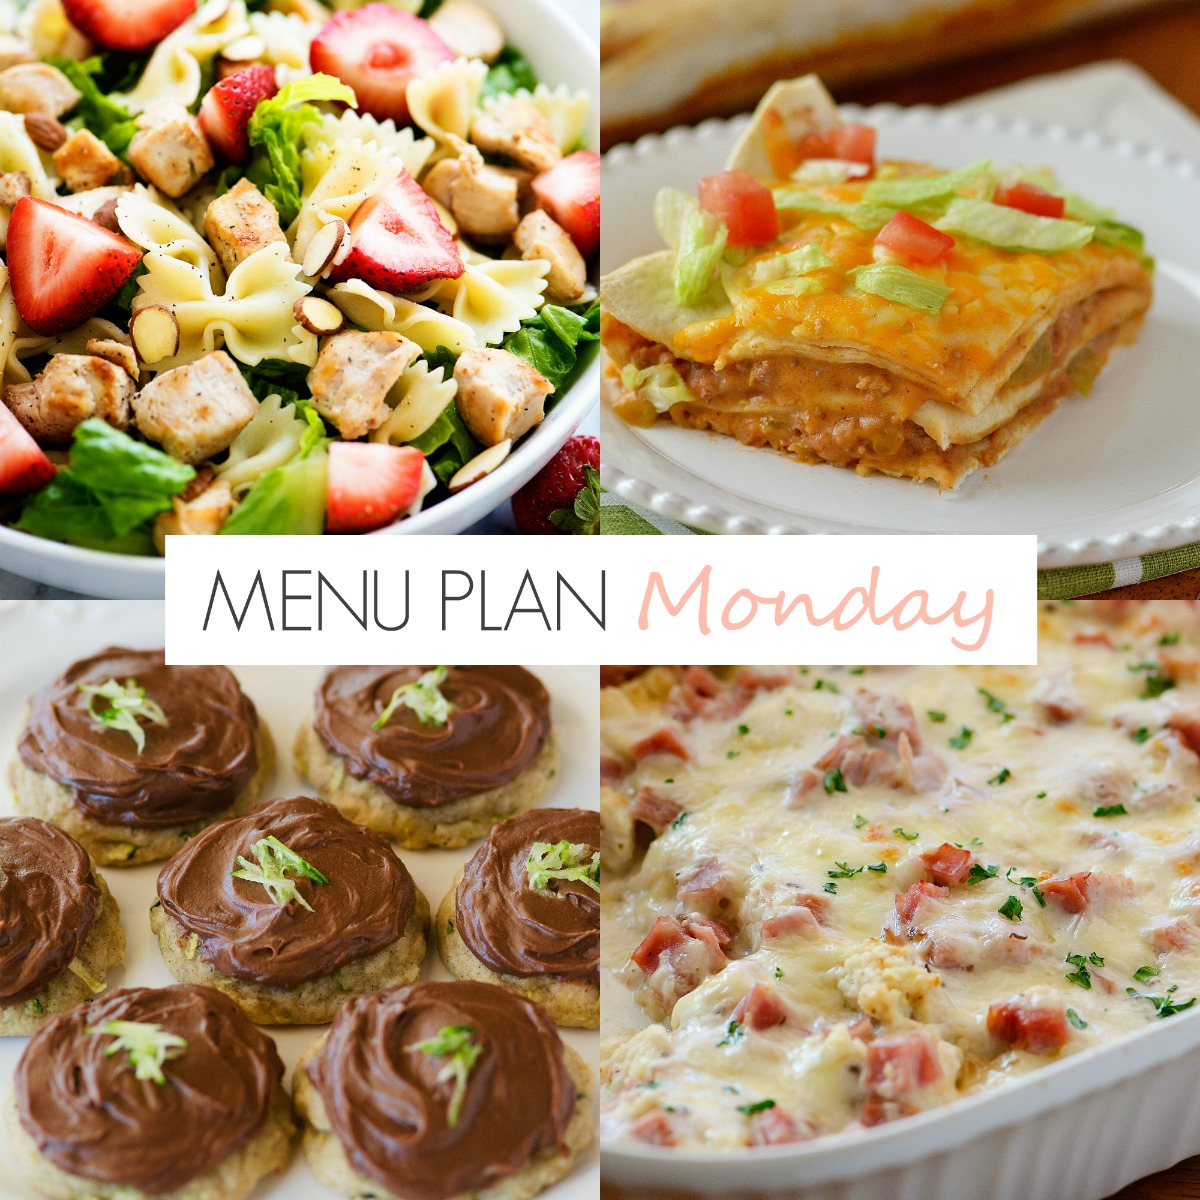 This week's menu is full of easy and delicious meals! Strawberry Chicken Salad, Mexican Tortilla Stack and Zucchini Cookies!